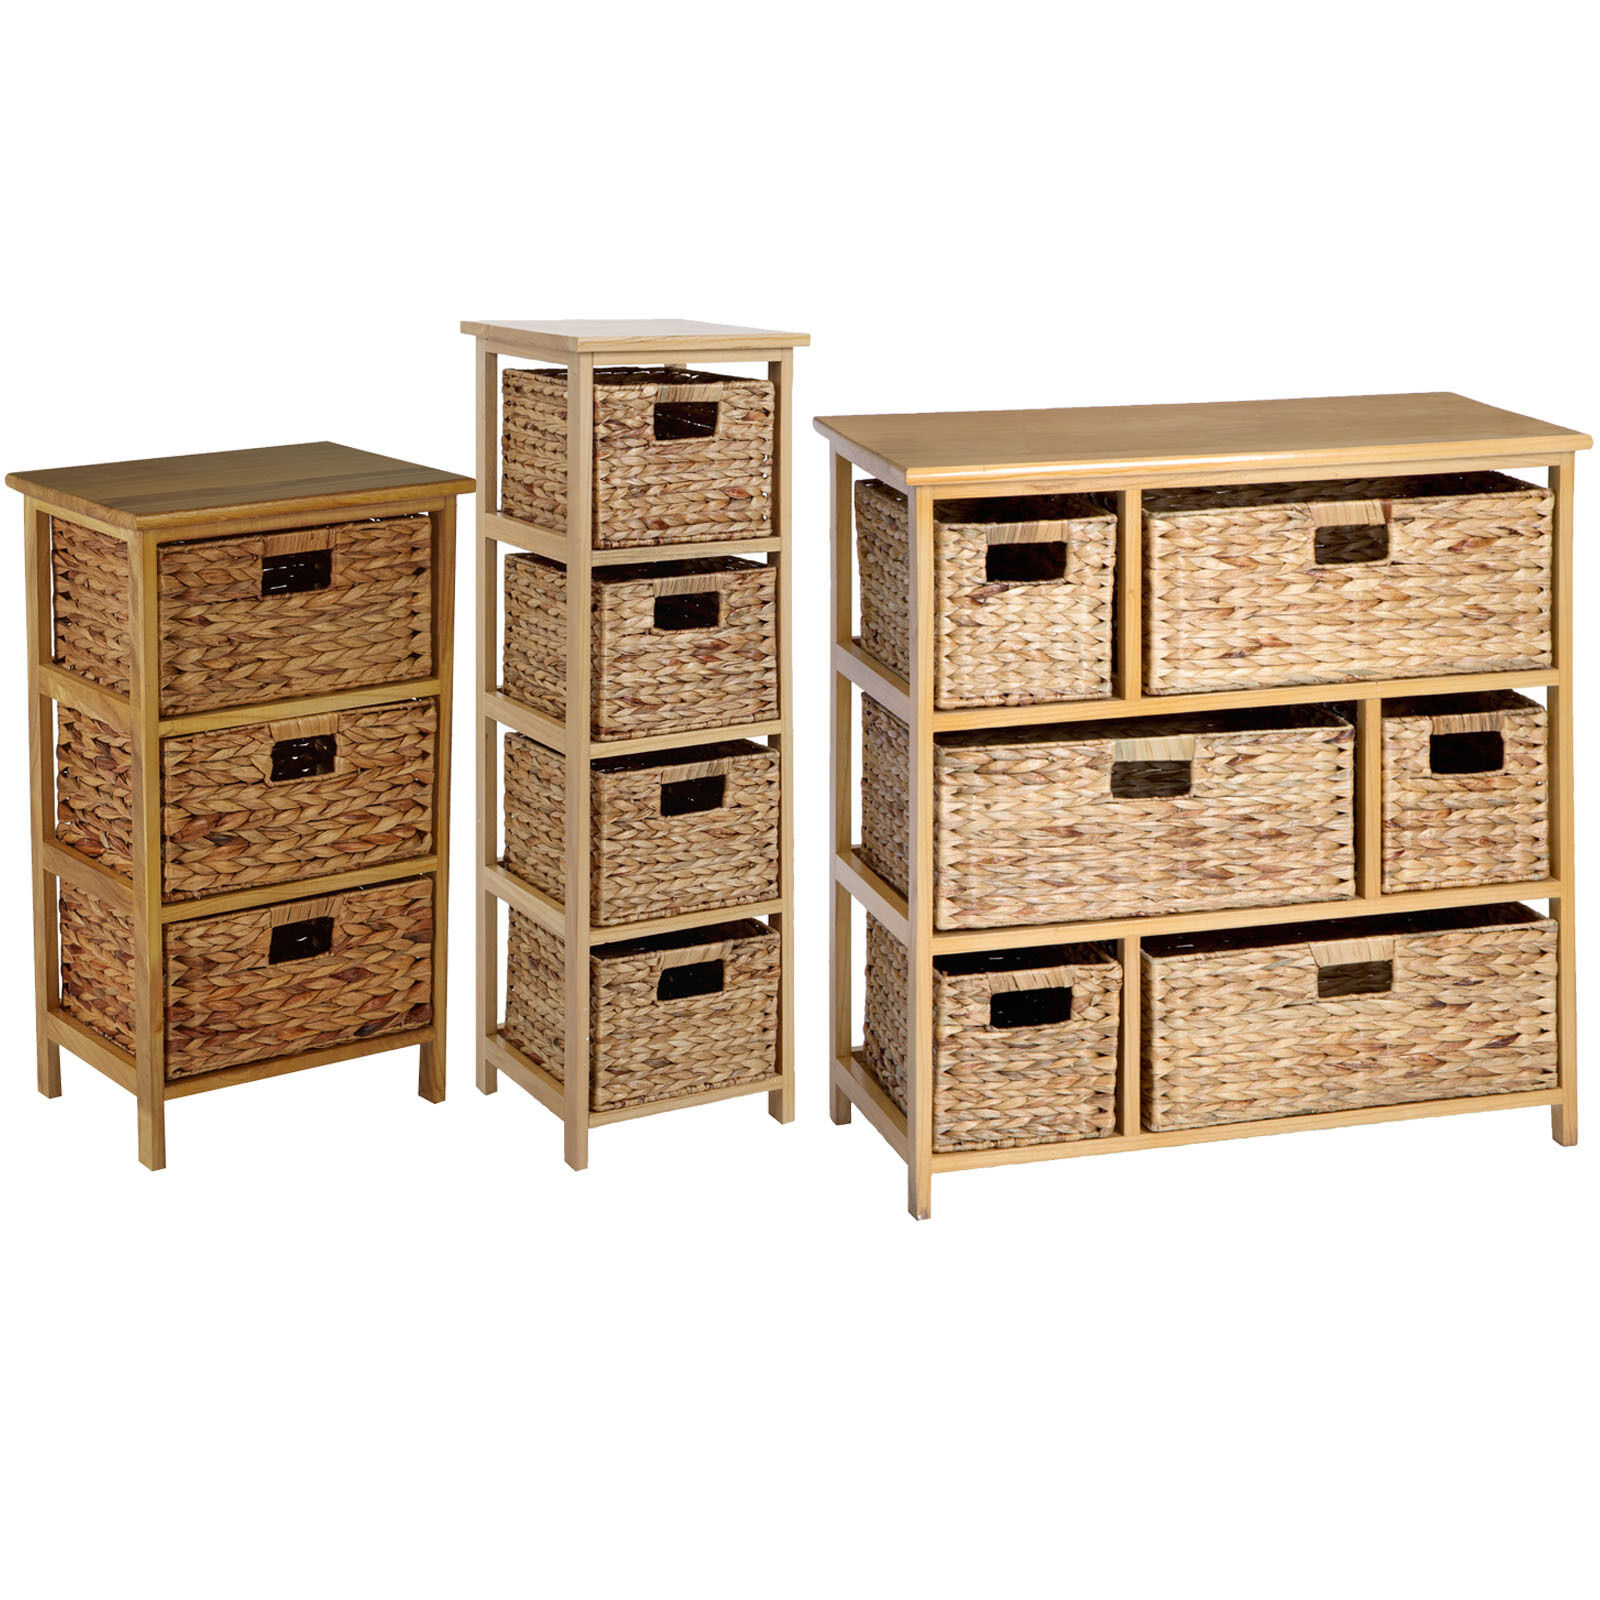 Wooden Storage Unit With Wicker Basket Drawers Large Chest Of Bathroom Shelving